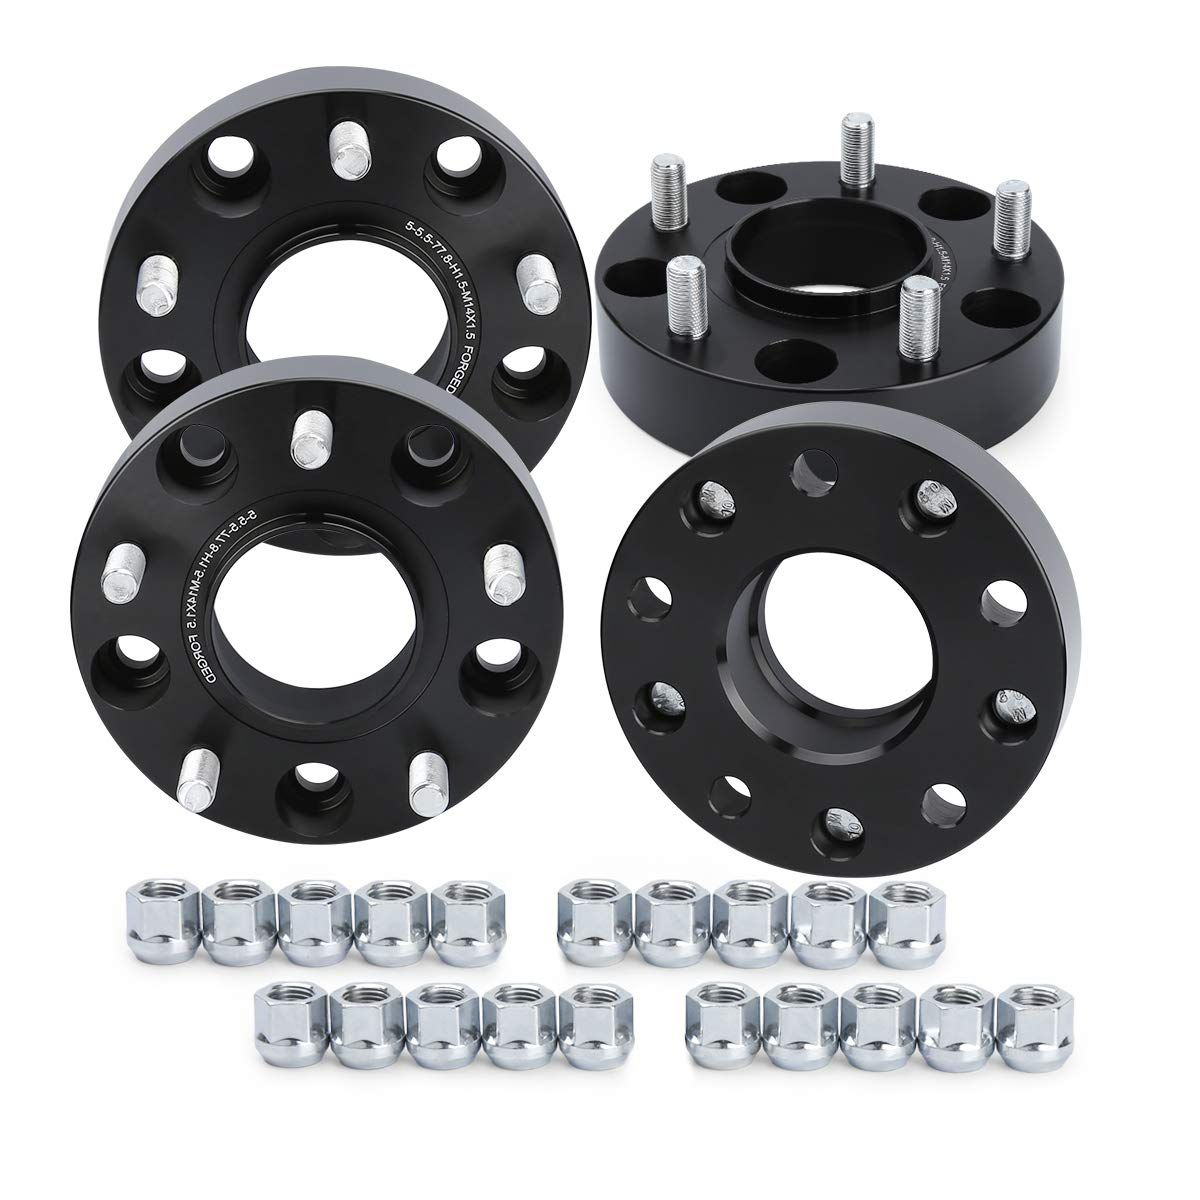 Ksp Wheel Spacers For Ram 1500 4pcs 1 5 38mm 5x5 5 To 5x5 5 Hub Centric Forged Wheel Spacers Hub Bore 77 8mm Thread Forged Wheels Dodge Ram 1500 2018 Dodge